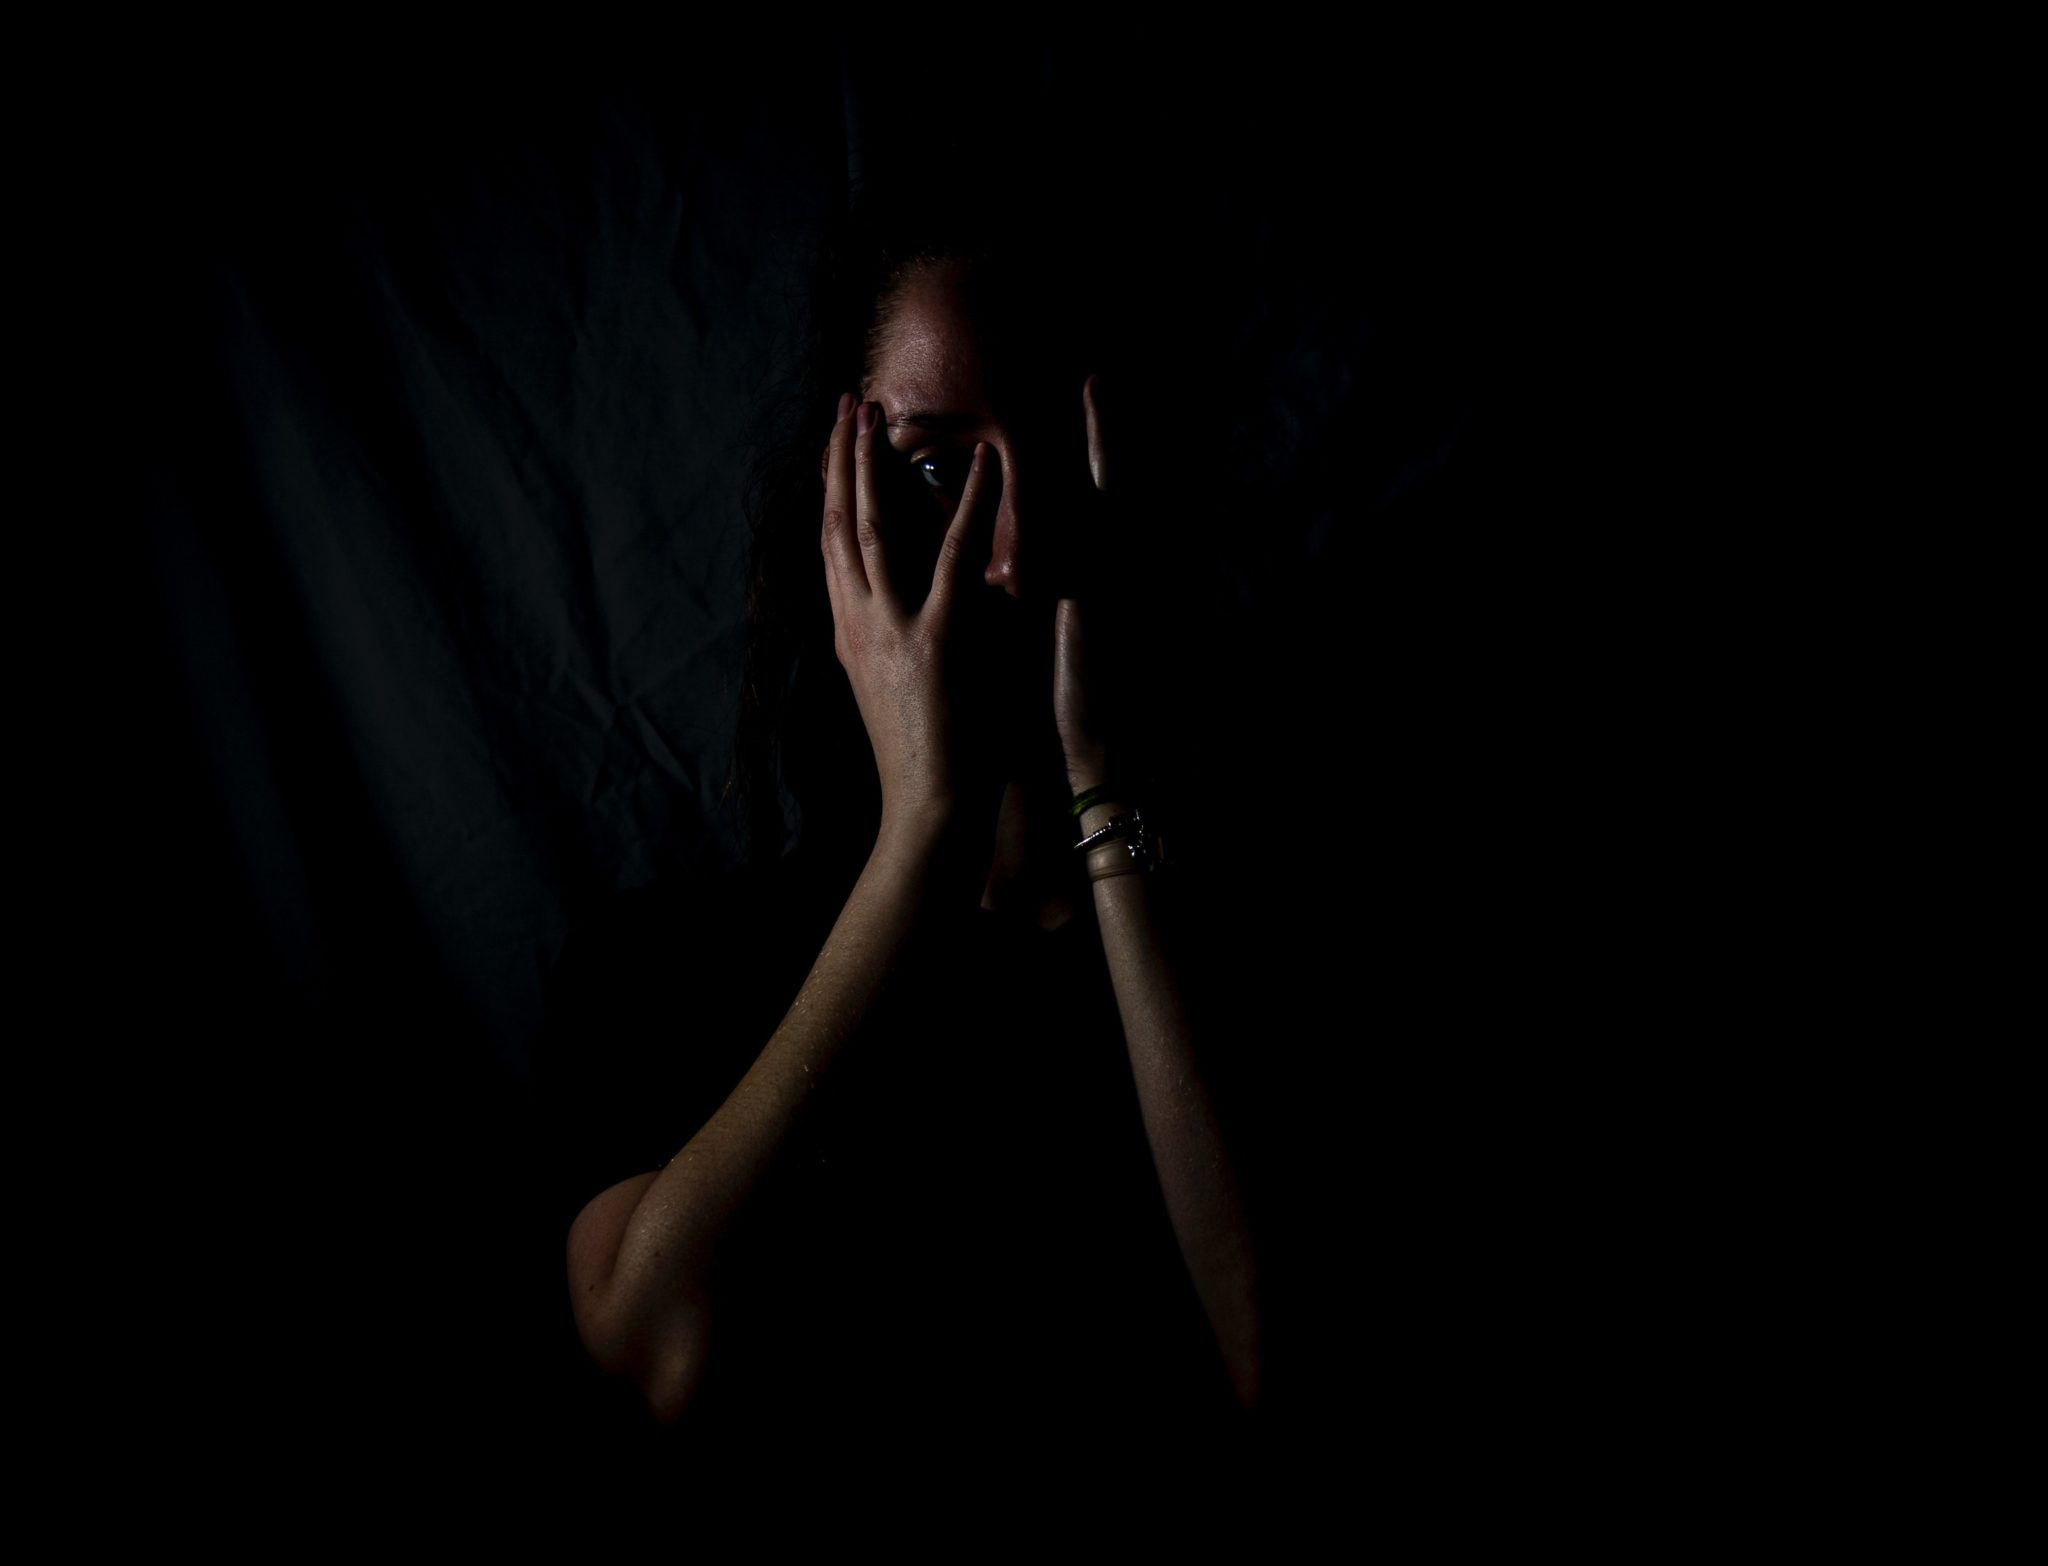 woman in the dark with hands in front of face